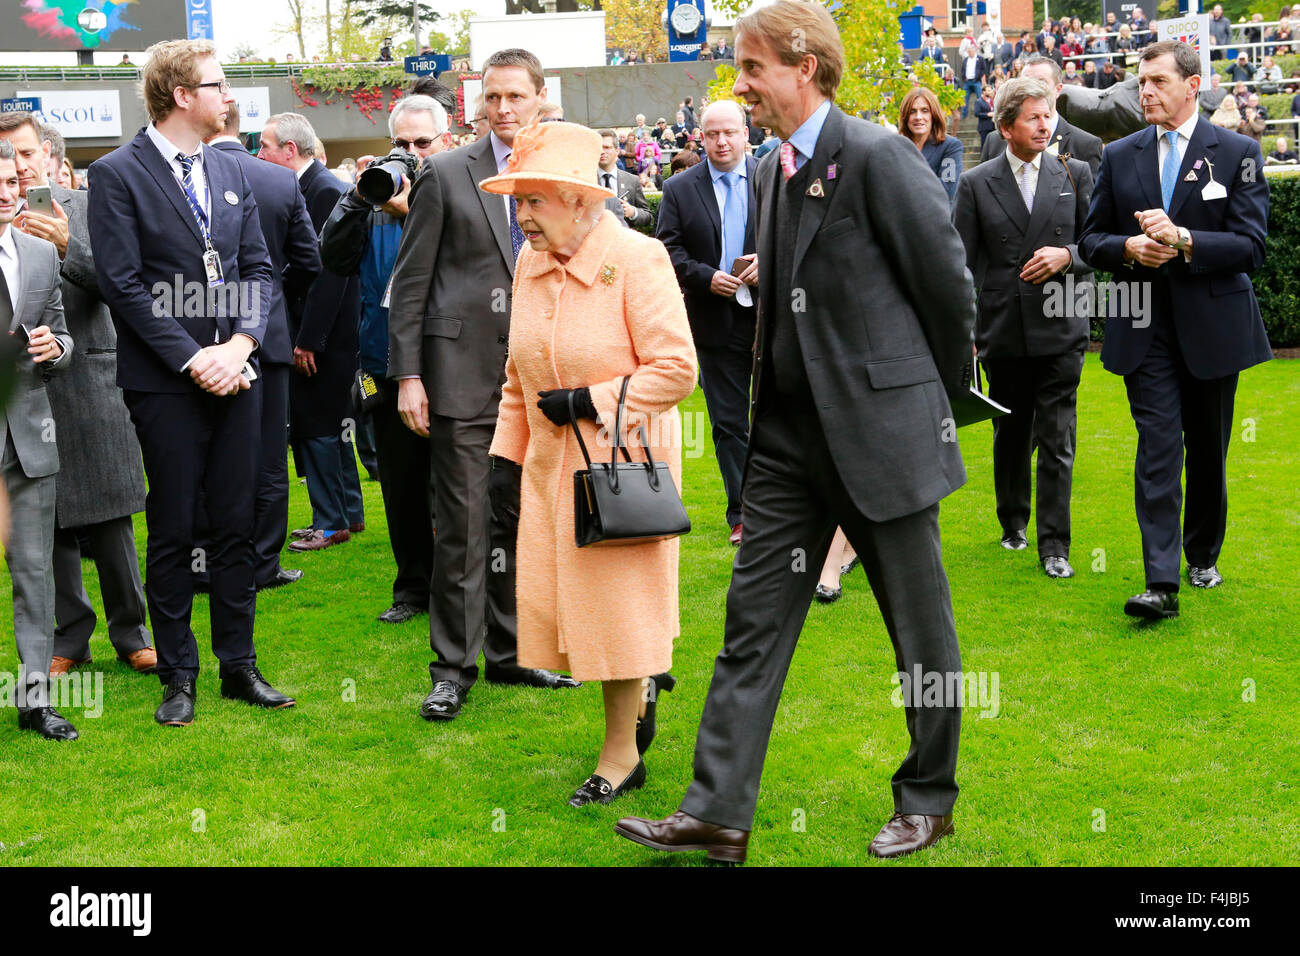 17.10.2015 - Ascot; Queen Elizabeth II and Johnny Weatherby (Duke of Devonshire as The Queen's representative). Stock Photo